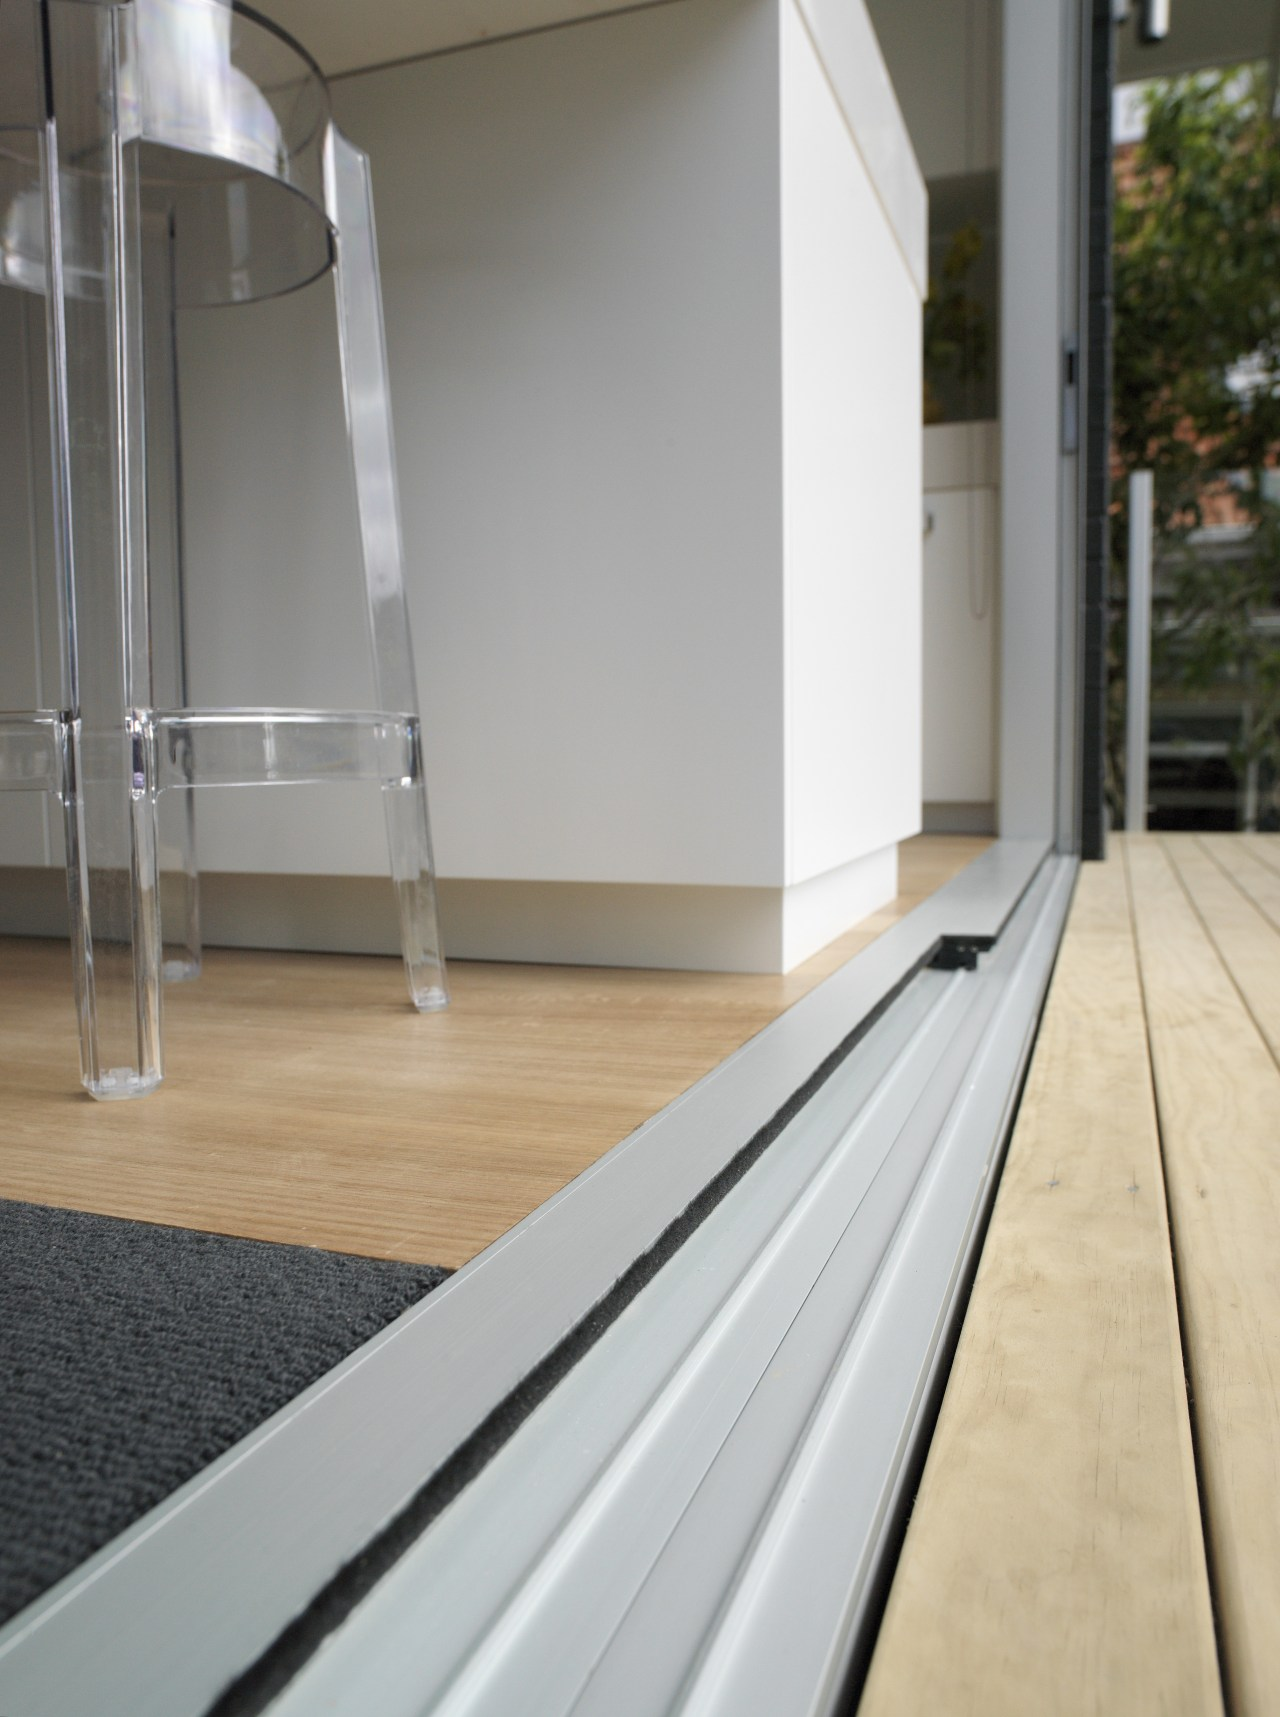 A view of some door and window joinery architecture, floor, flooring, glass, window, wood, gray